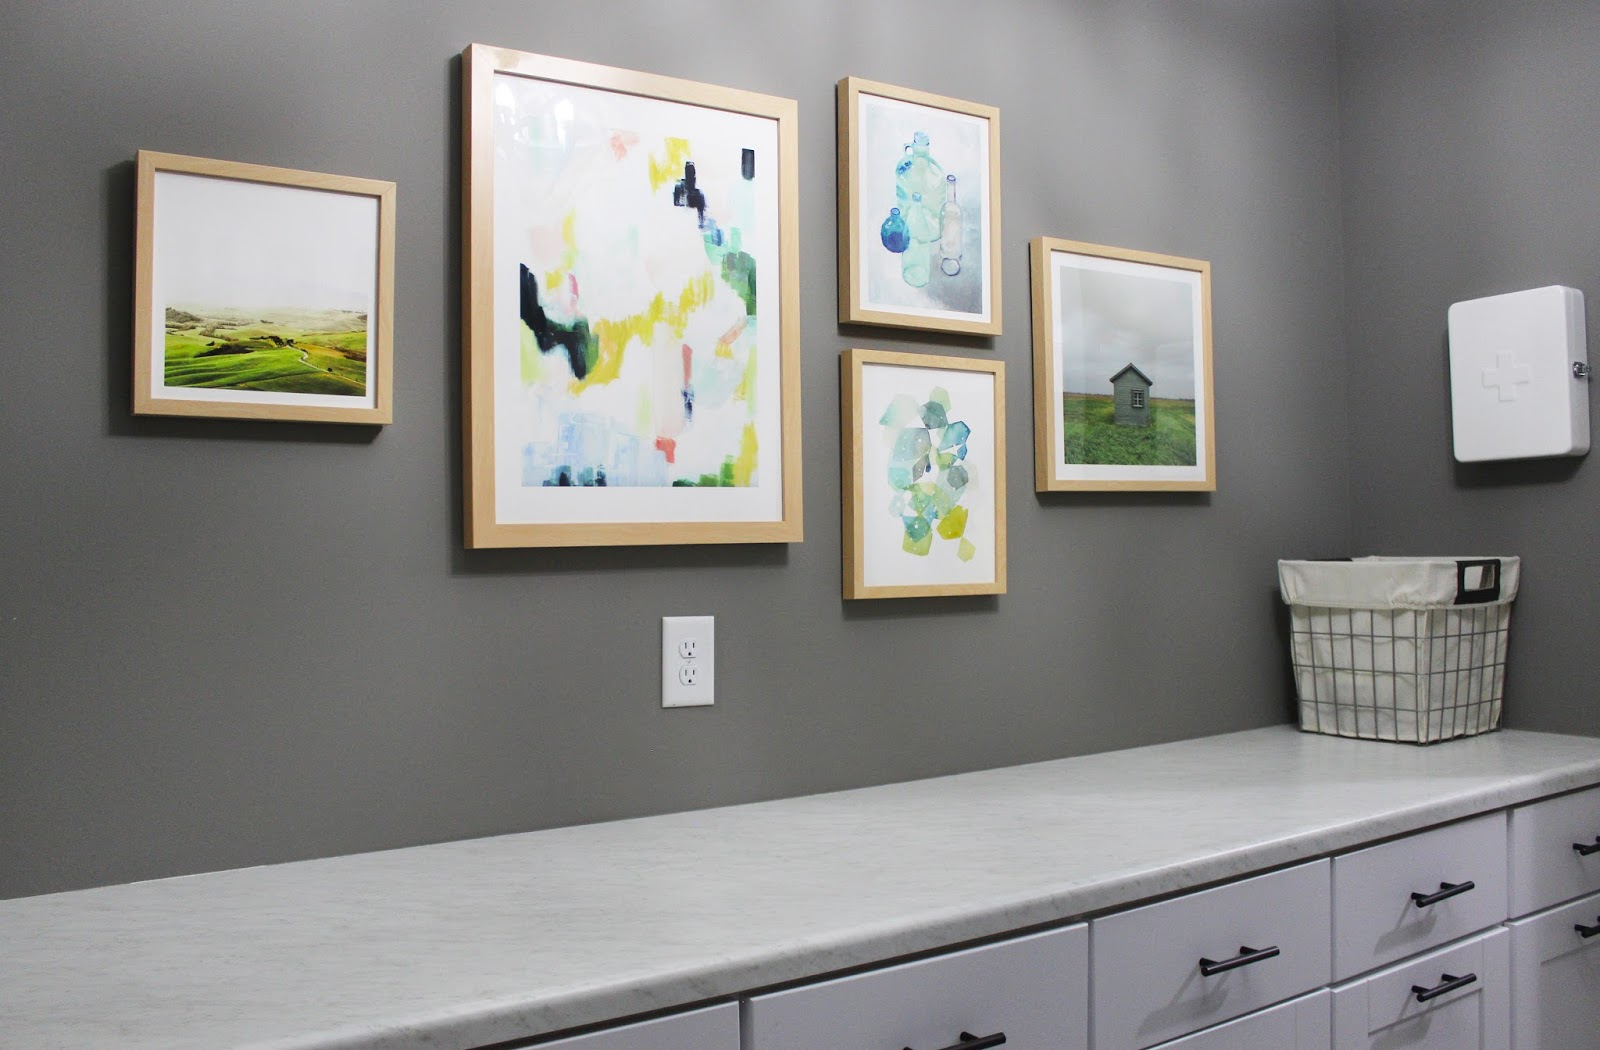 Laundry Room Frames Endearing Room Tour Laundry Room  Minted Art Inspiration